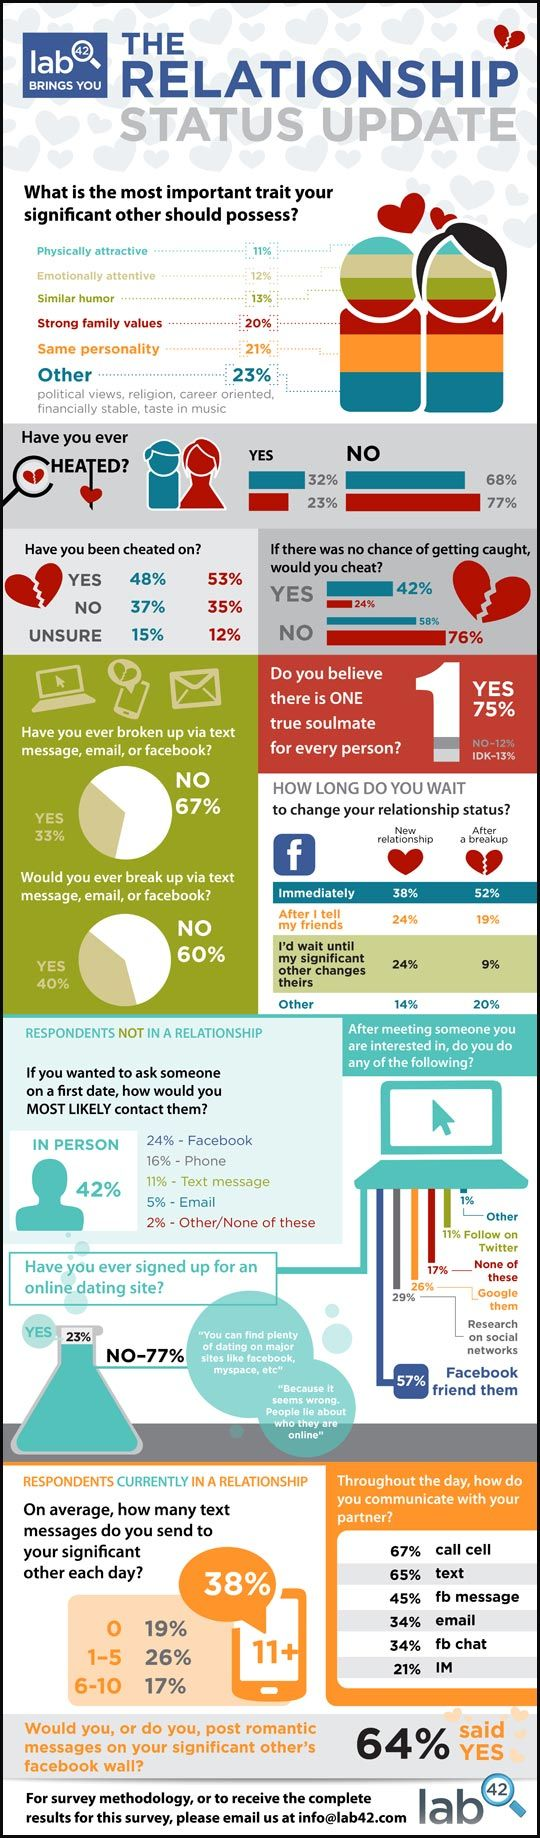 The relationship status update infographic